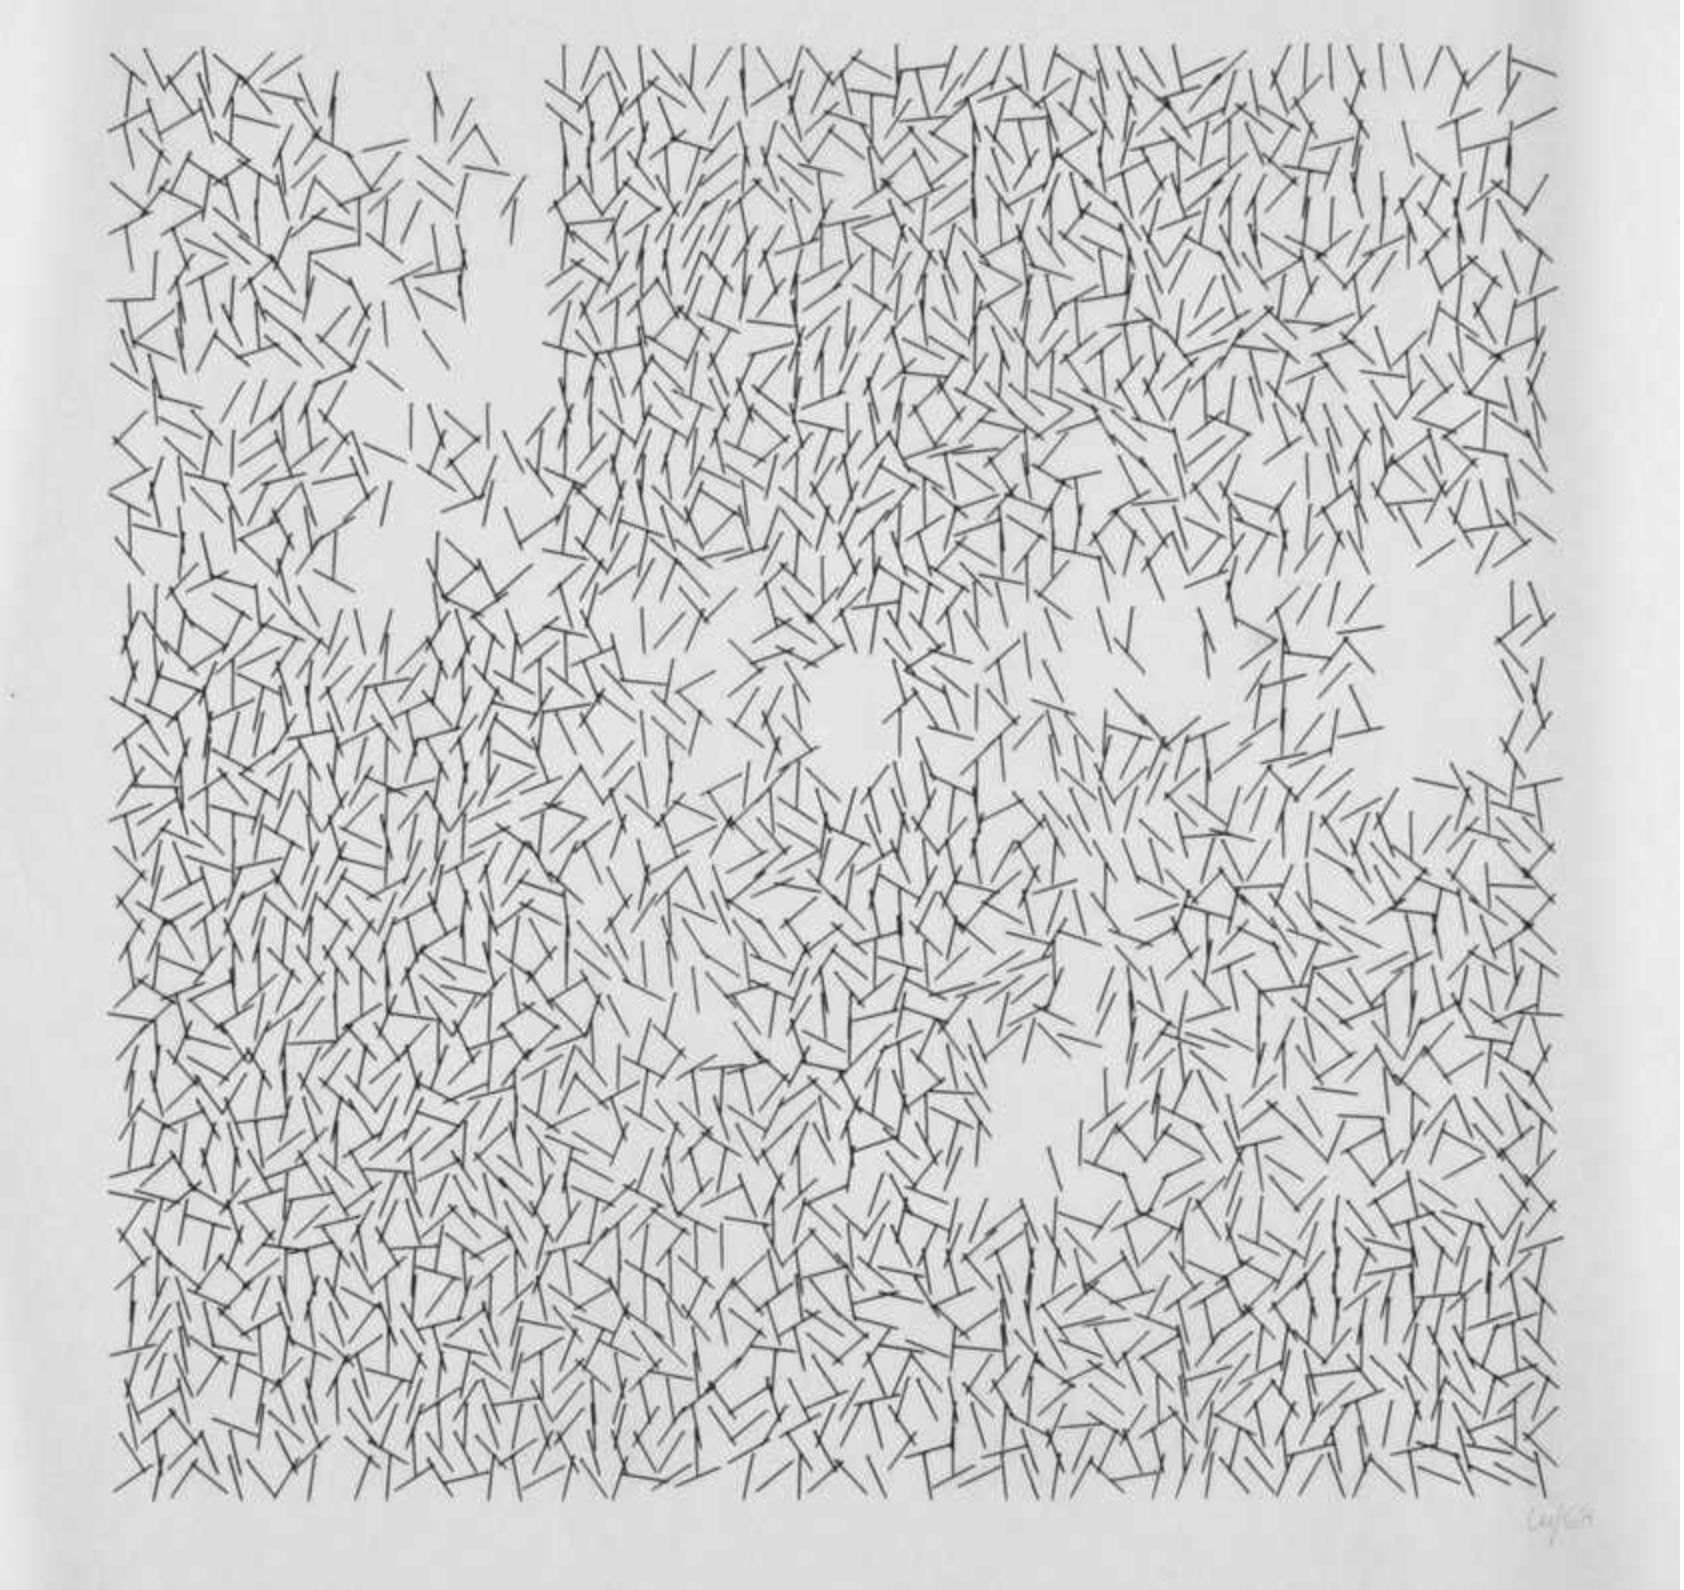 Vera Molnar, Interruptions, 1968/69, open series, plotter drawing, 28.5 x 28.5 cm